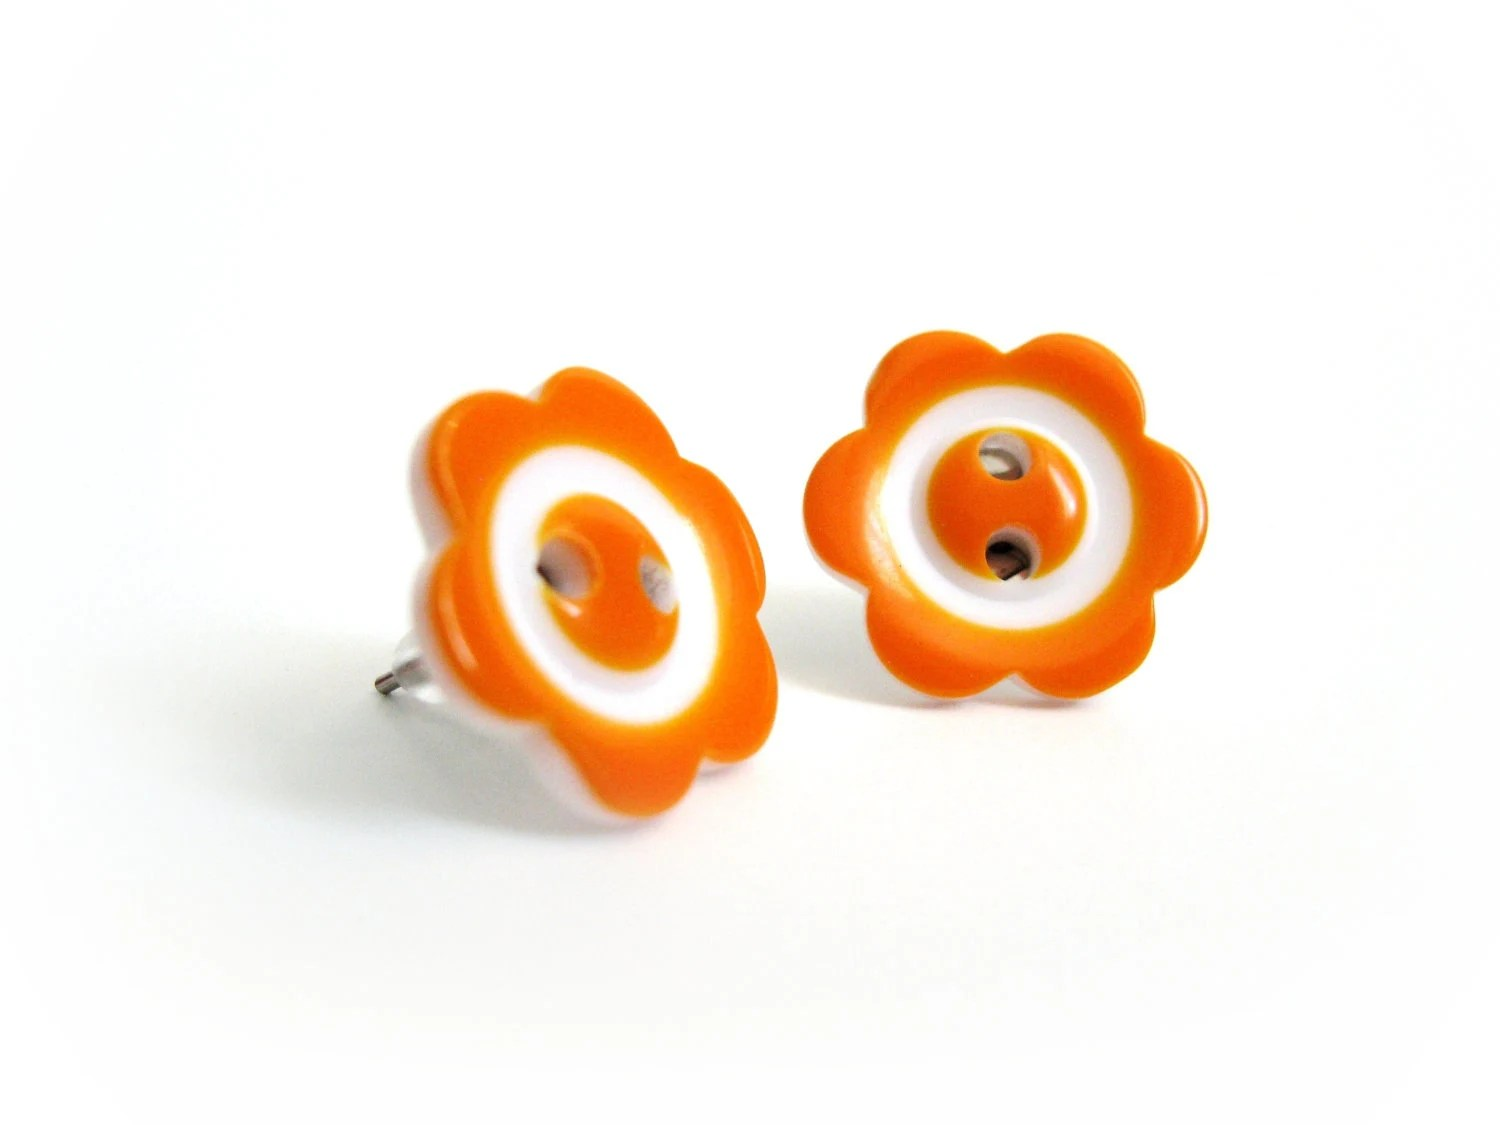 Fun Post Earrings - Tangerine Orange Flower Button Jewelry - On sale - AnnyMay